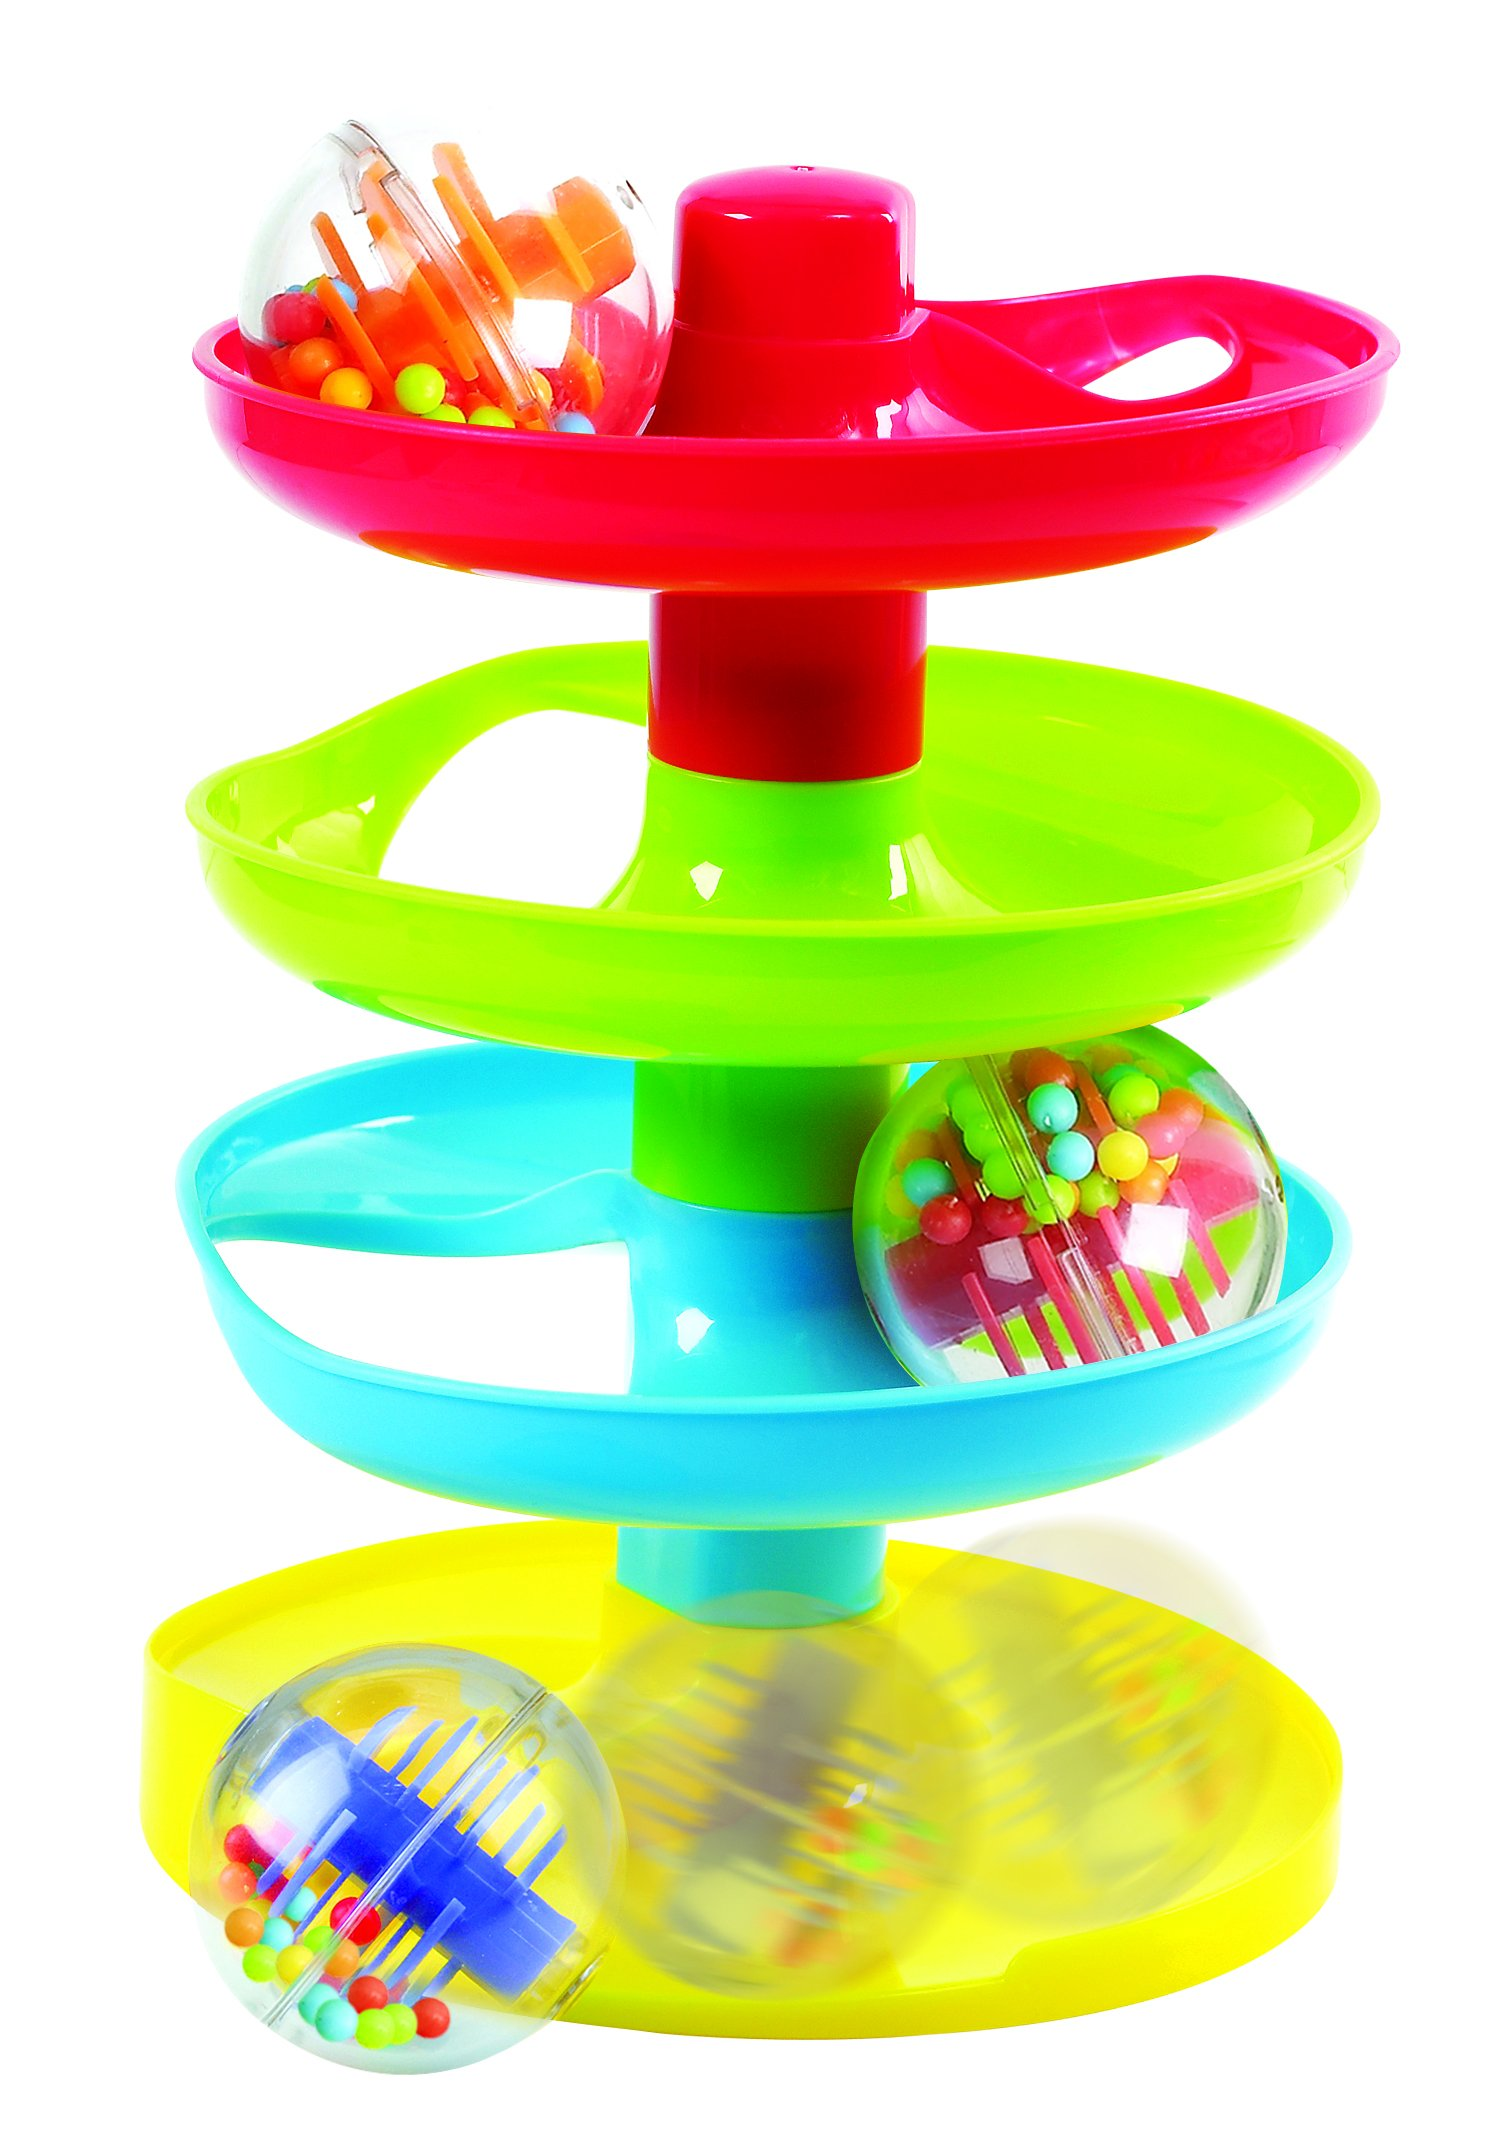 PlayGo Busy Ball Tower